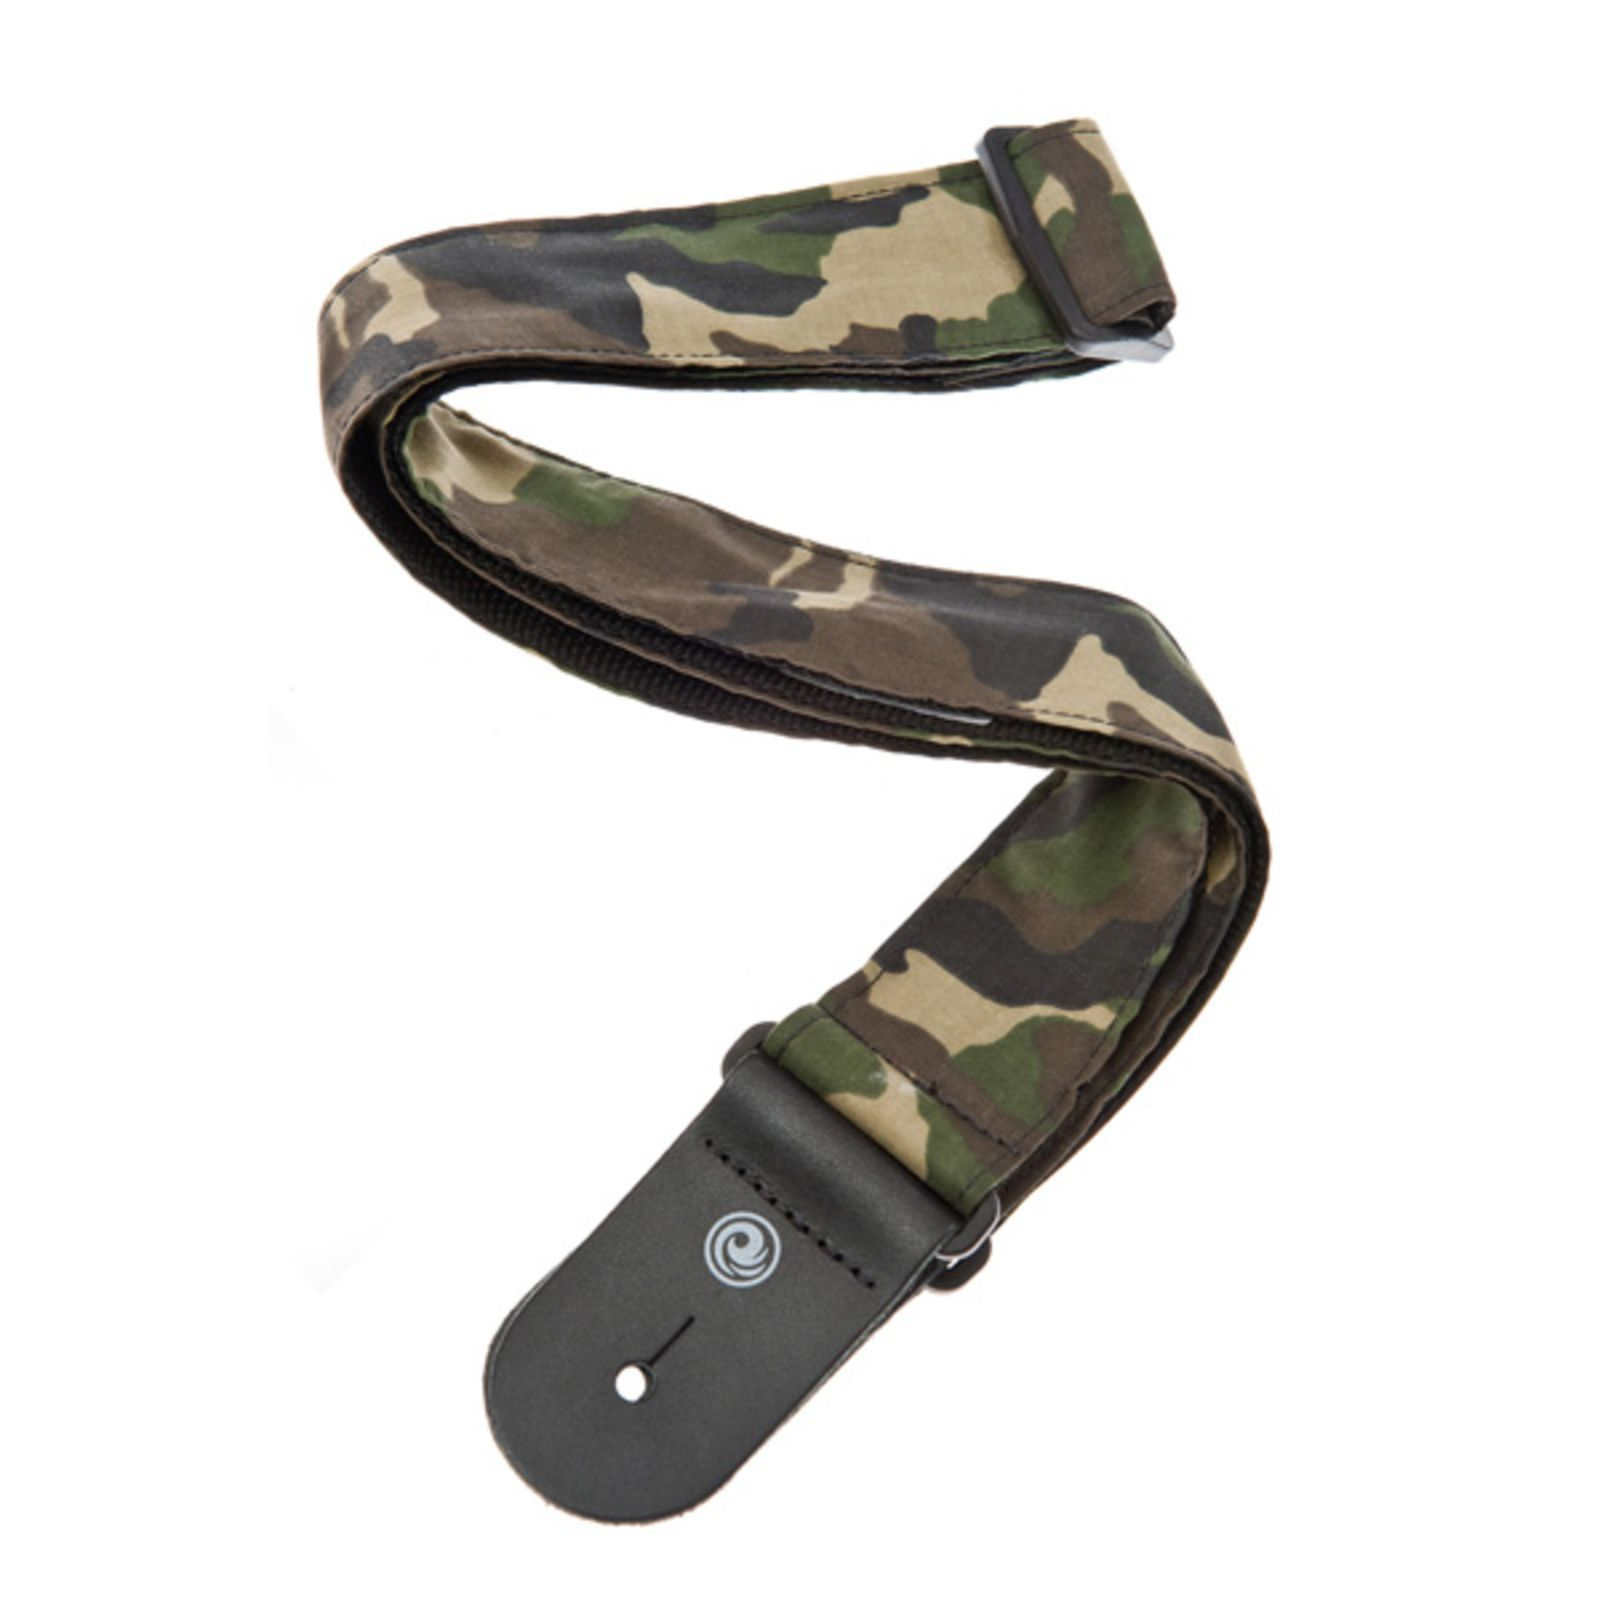 Planet Waves Gitarrengurt 50G04 Camouflage Textilkollektion Produktbild